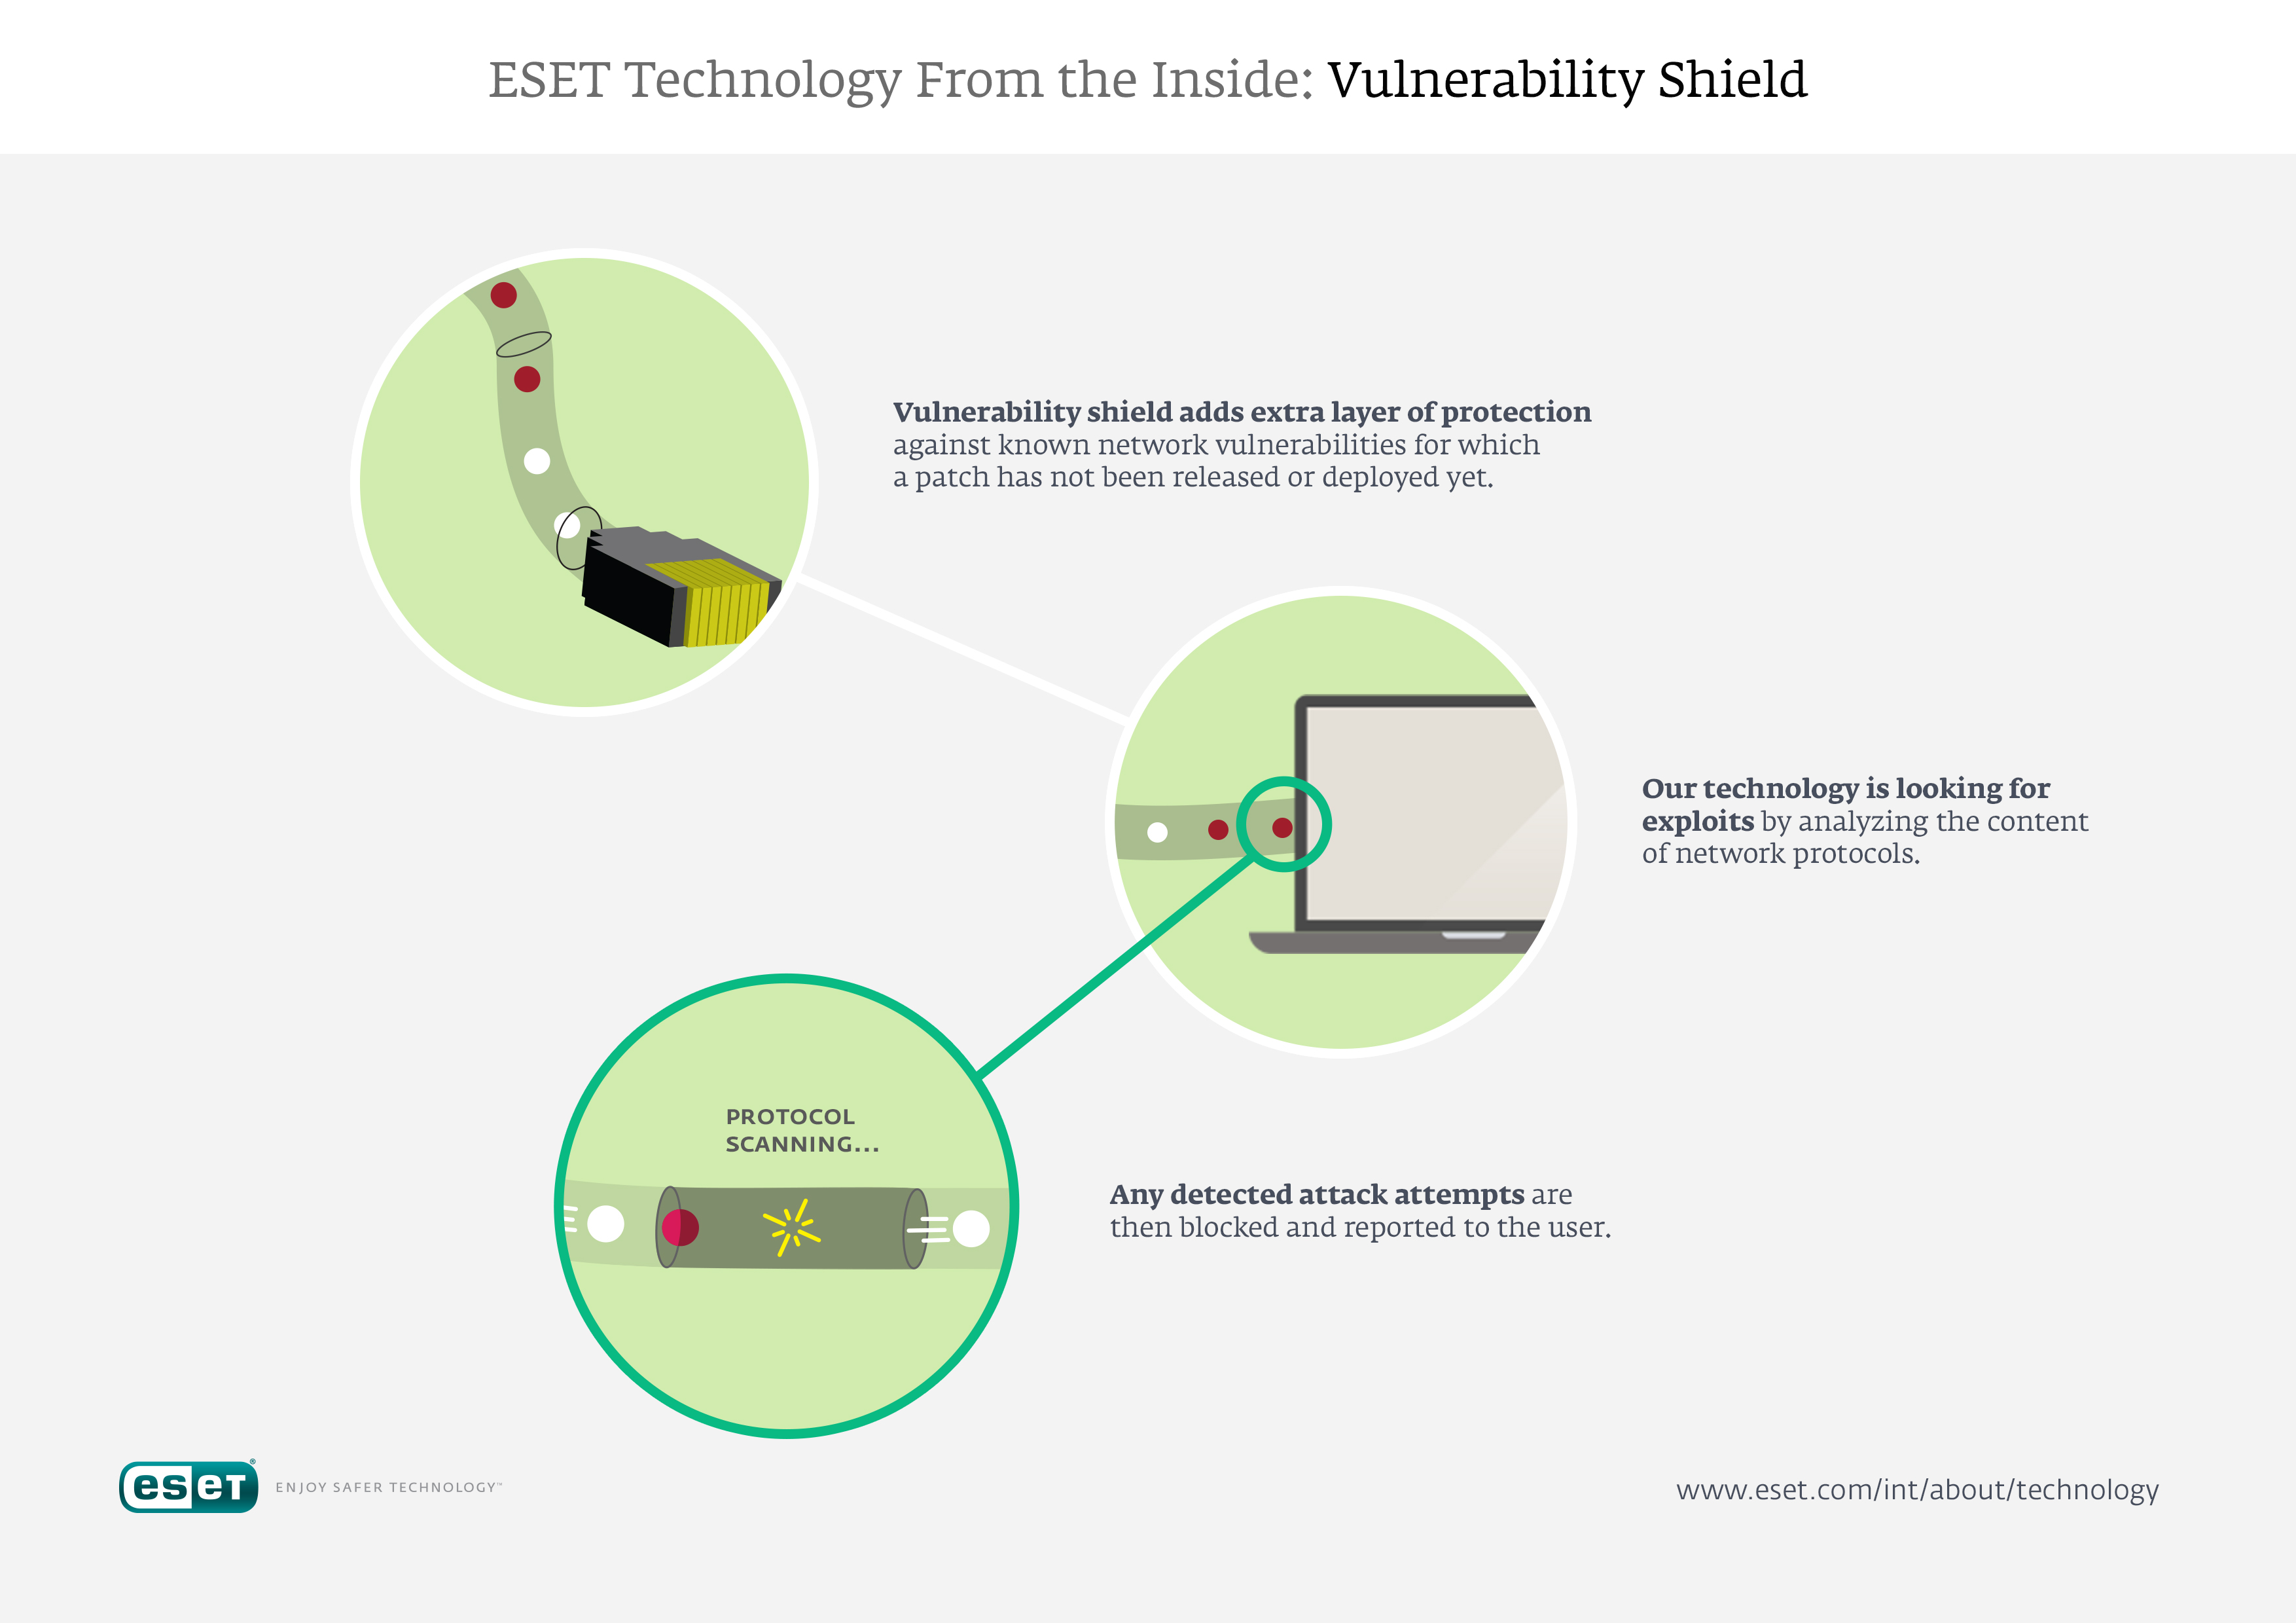 V9_05_Technology_From_The_Inside_Vulnerability Shield